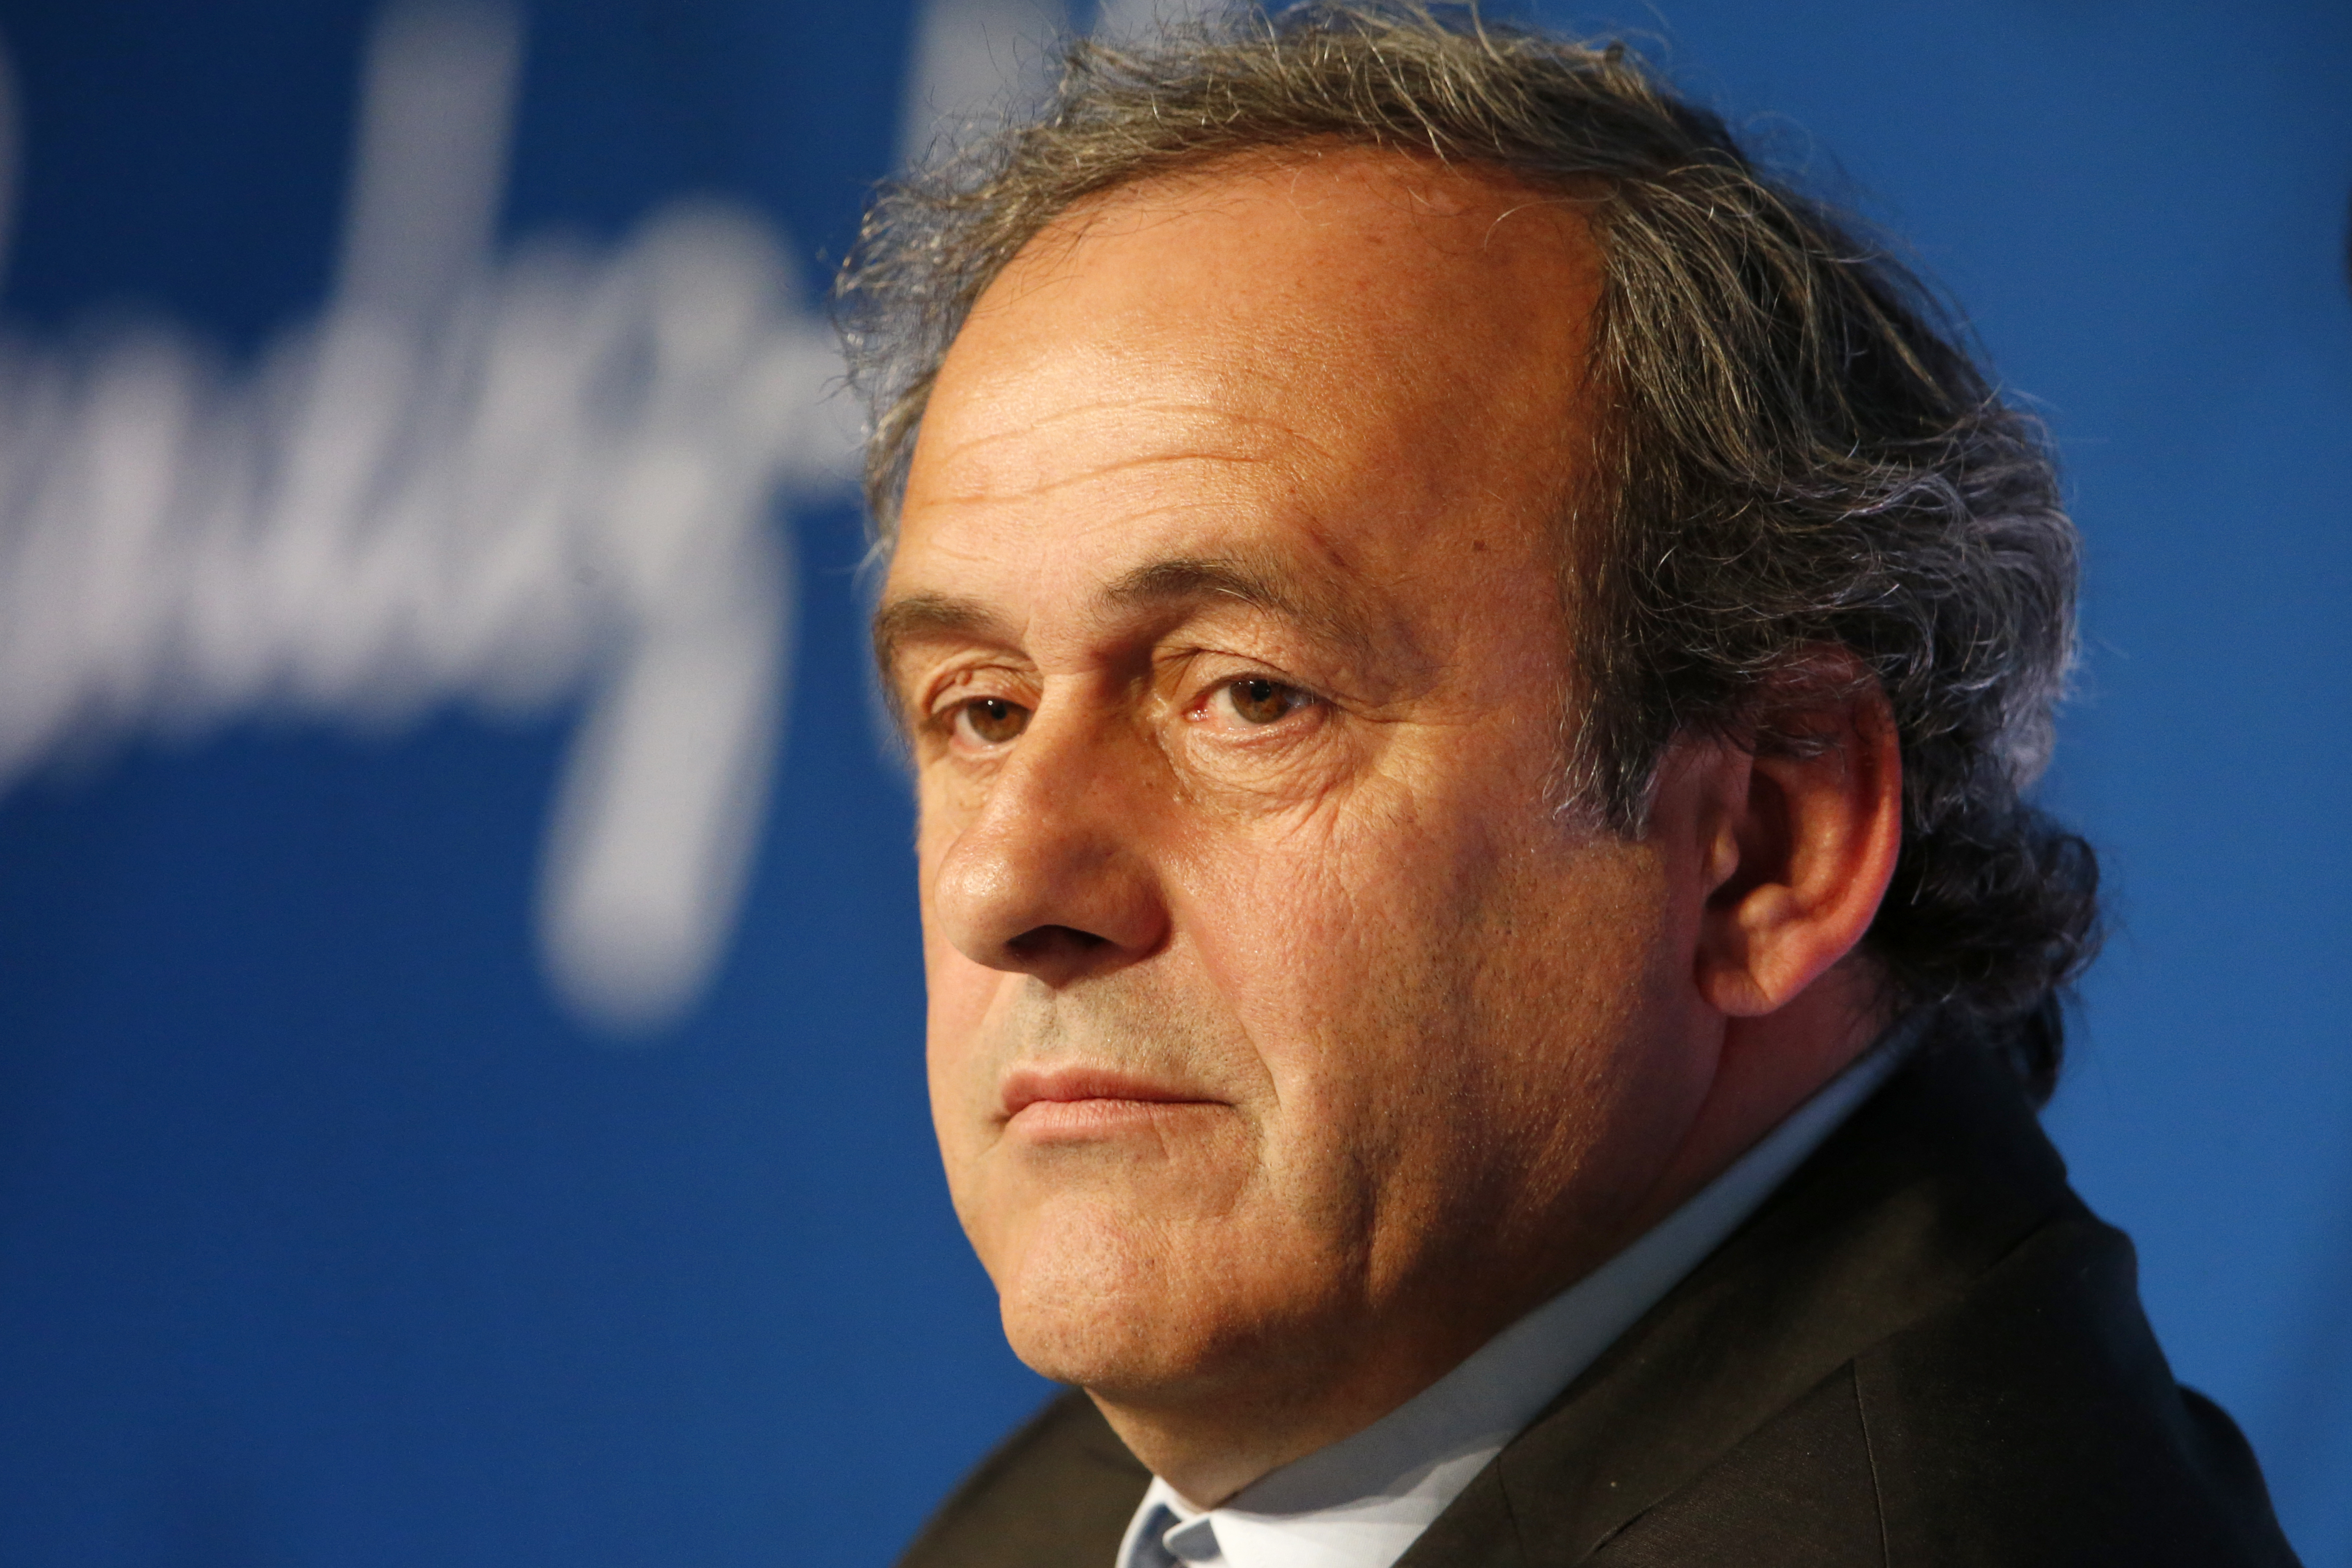 UEFA President Michel Platini holds a news conference a year before the start of Euro 2016, in Paris, France, June 10, 2015.